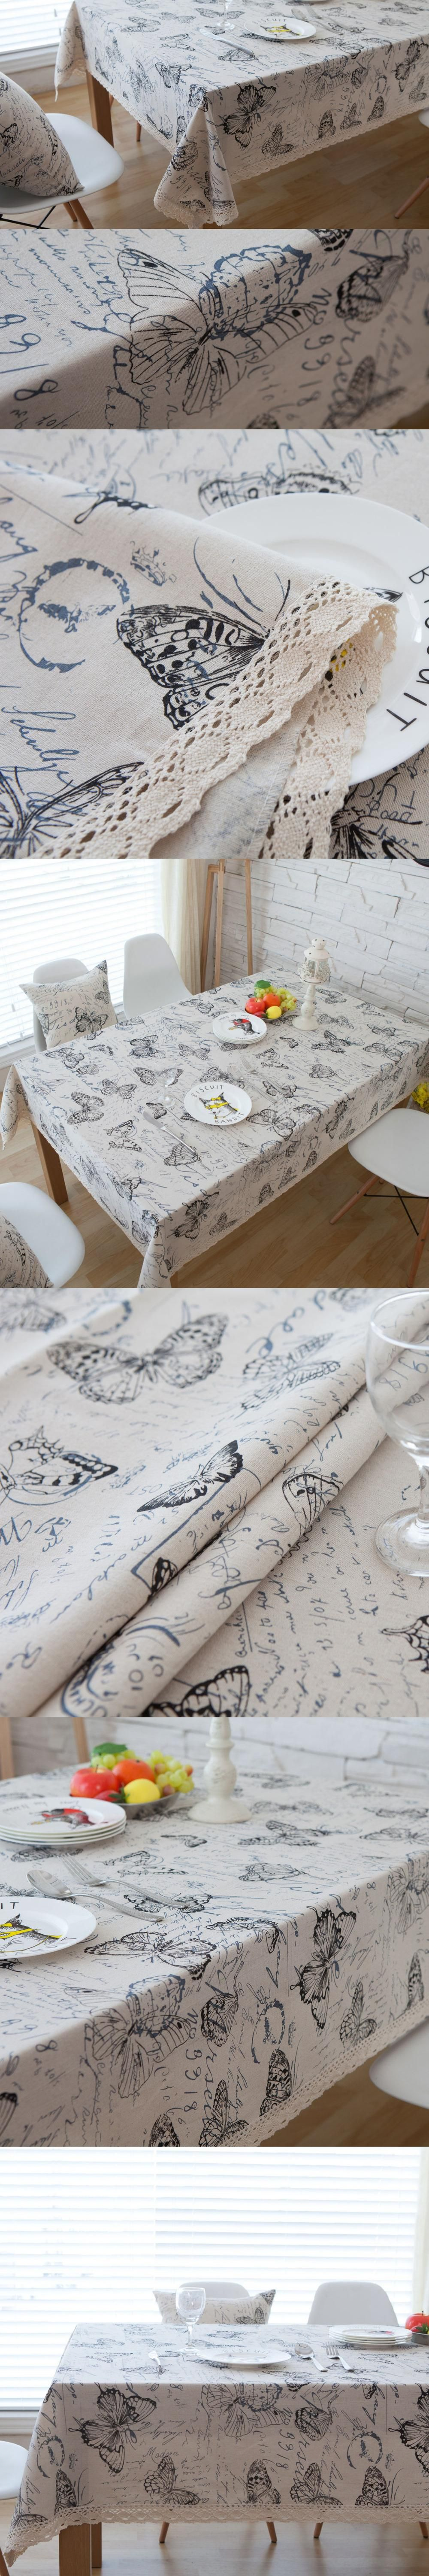 9f54419b54 OURDECOK Linen Tableclothes Butterfly Table Cloth Print Dining Table Cover  Kitchen Home Textile Home Decor Nappes